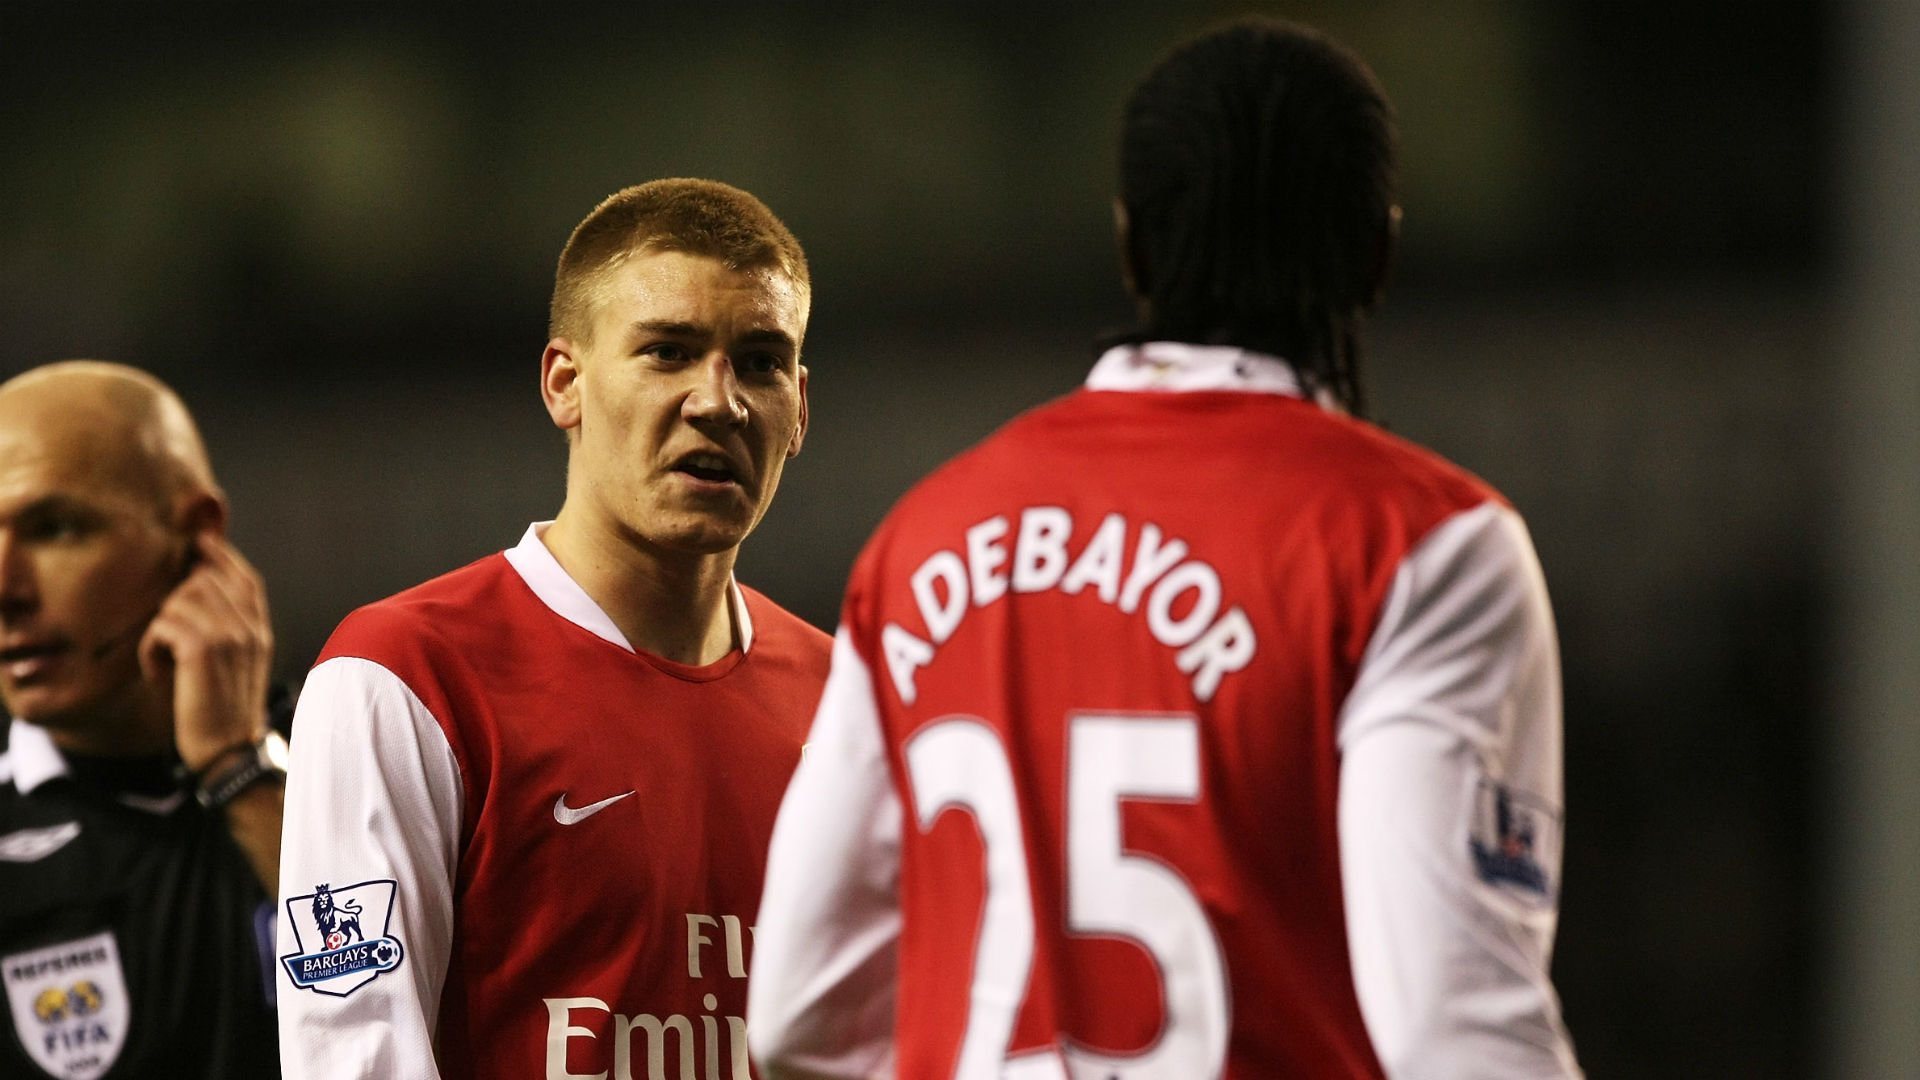 'He's not really my cup of tea' - Bendtner reflects on Arsenal rifts with Adebayor & Henry